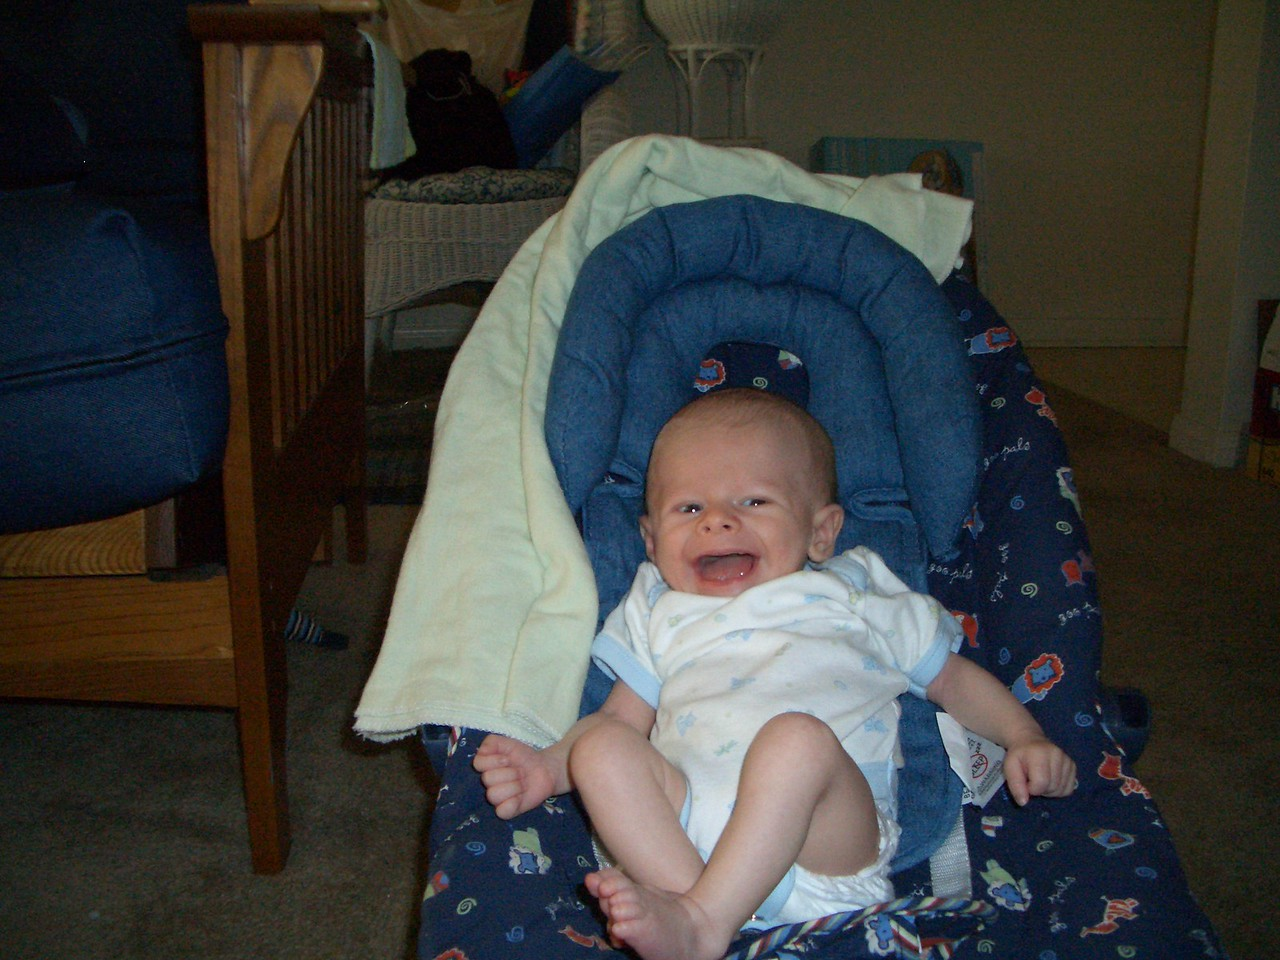 Cody in his chair (mother's day picture)